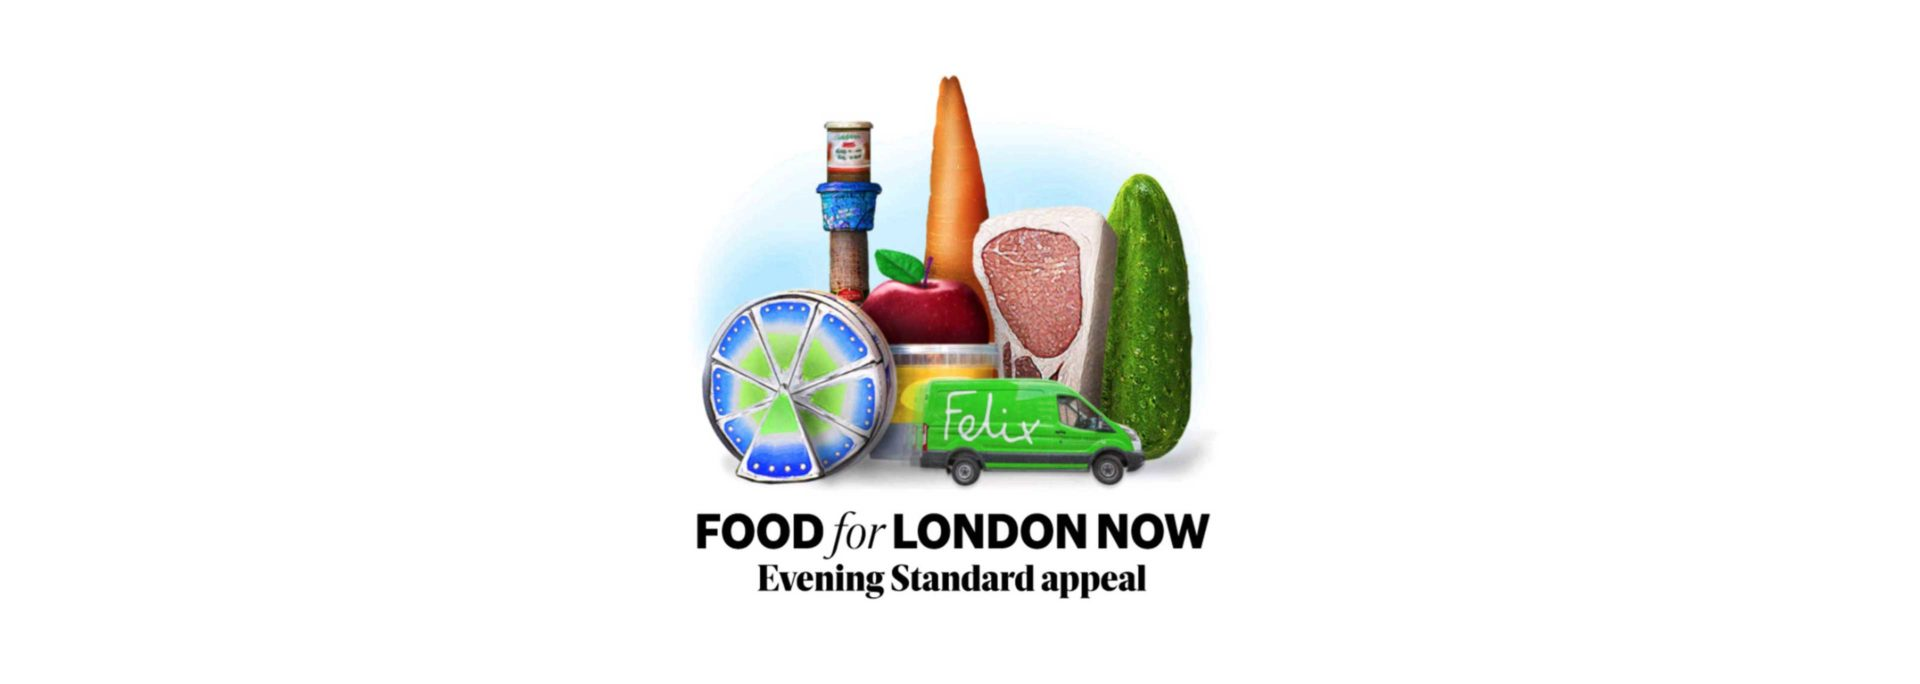 food-for-london-now-2